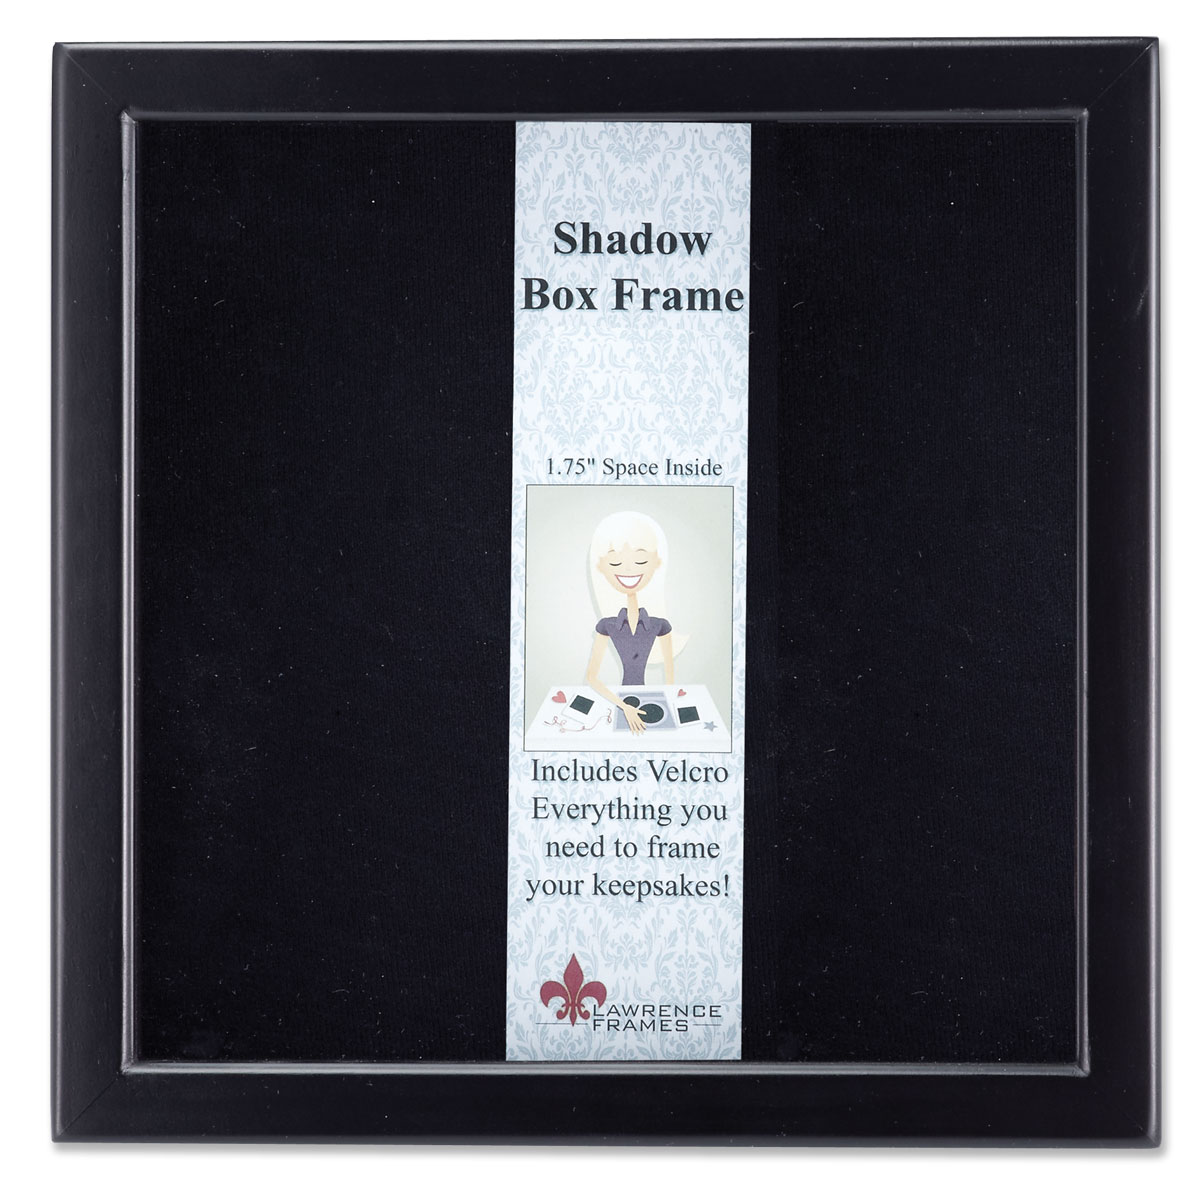 790088 black wood shadow box 8x8 picture frame photoframes 790088 black wood shadow box 8x8 picture frame jeuxipadfo Gallery